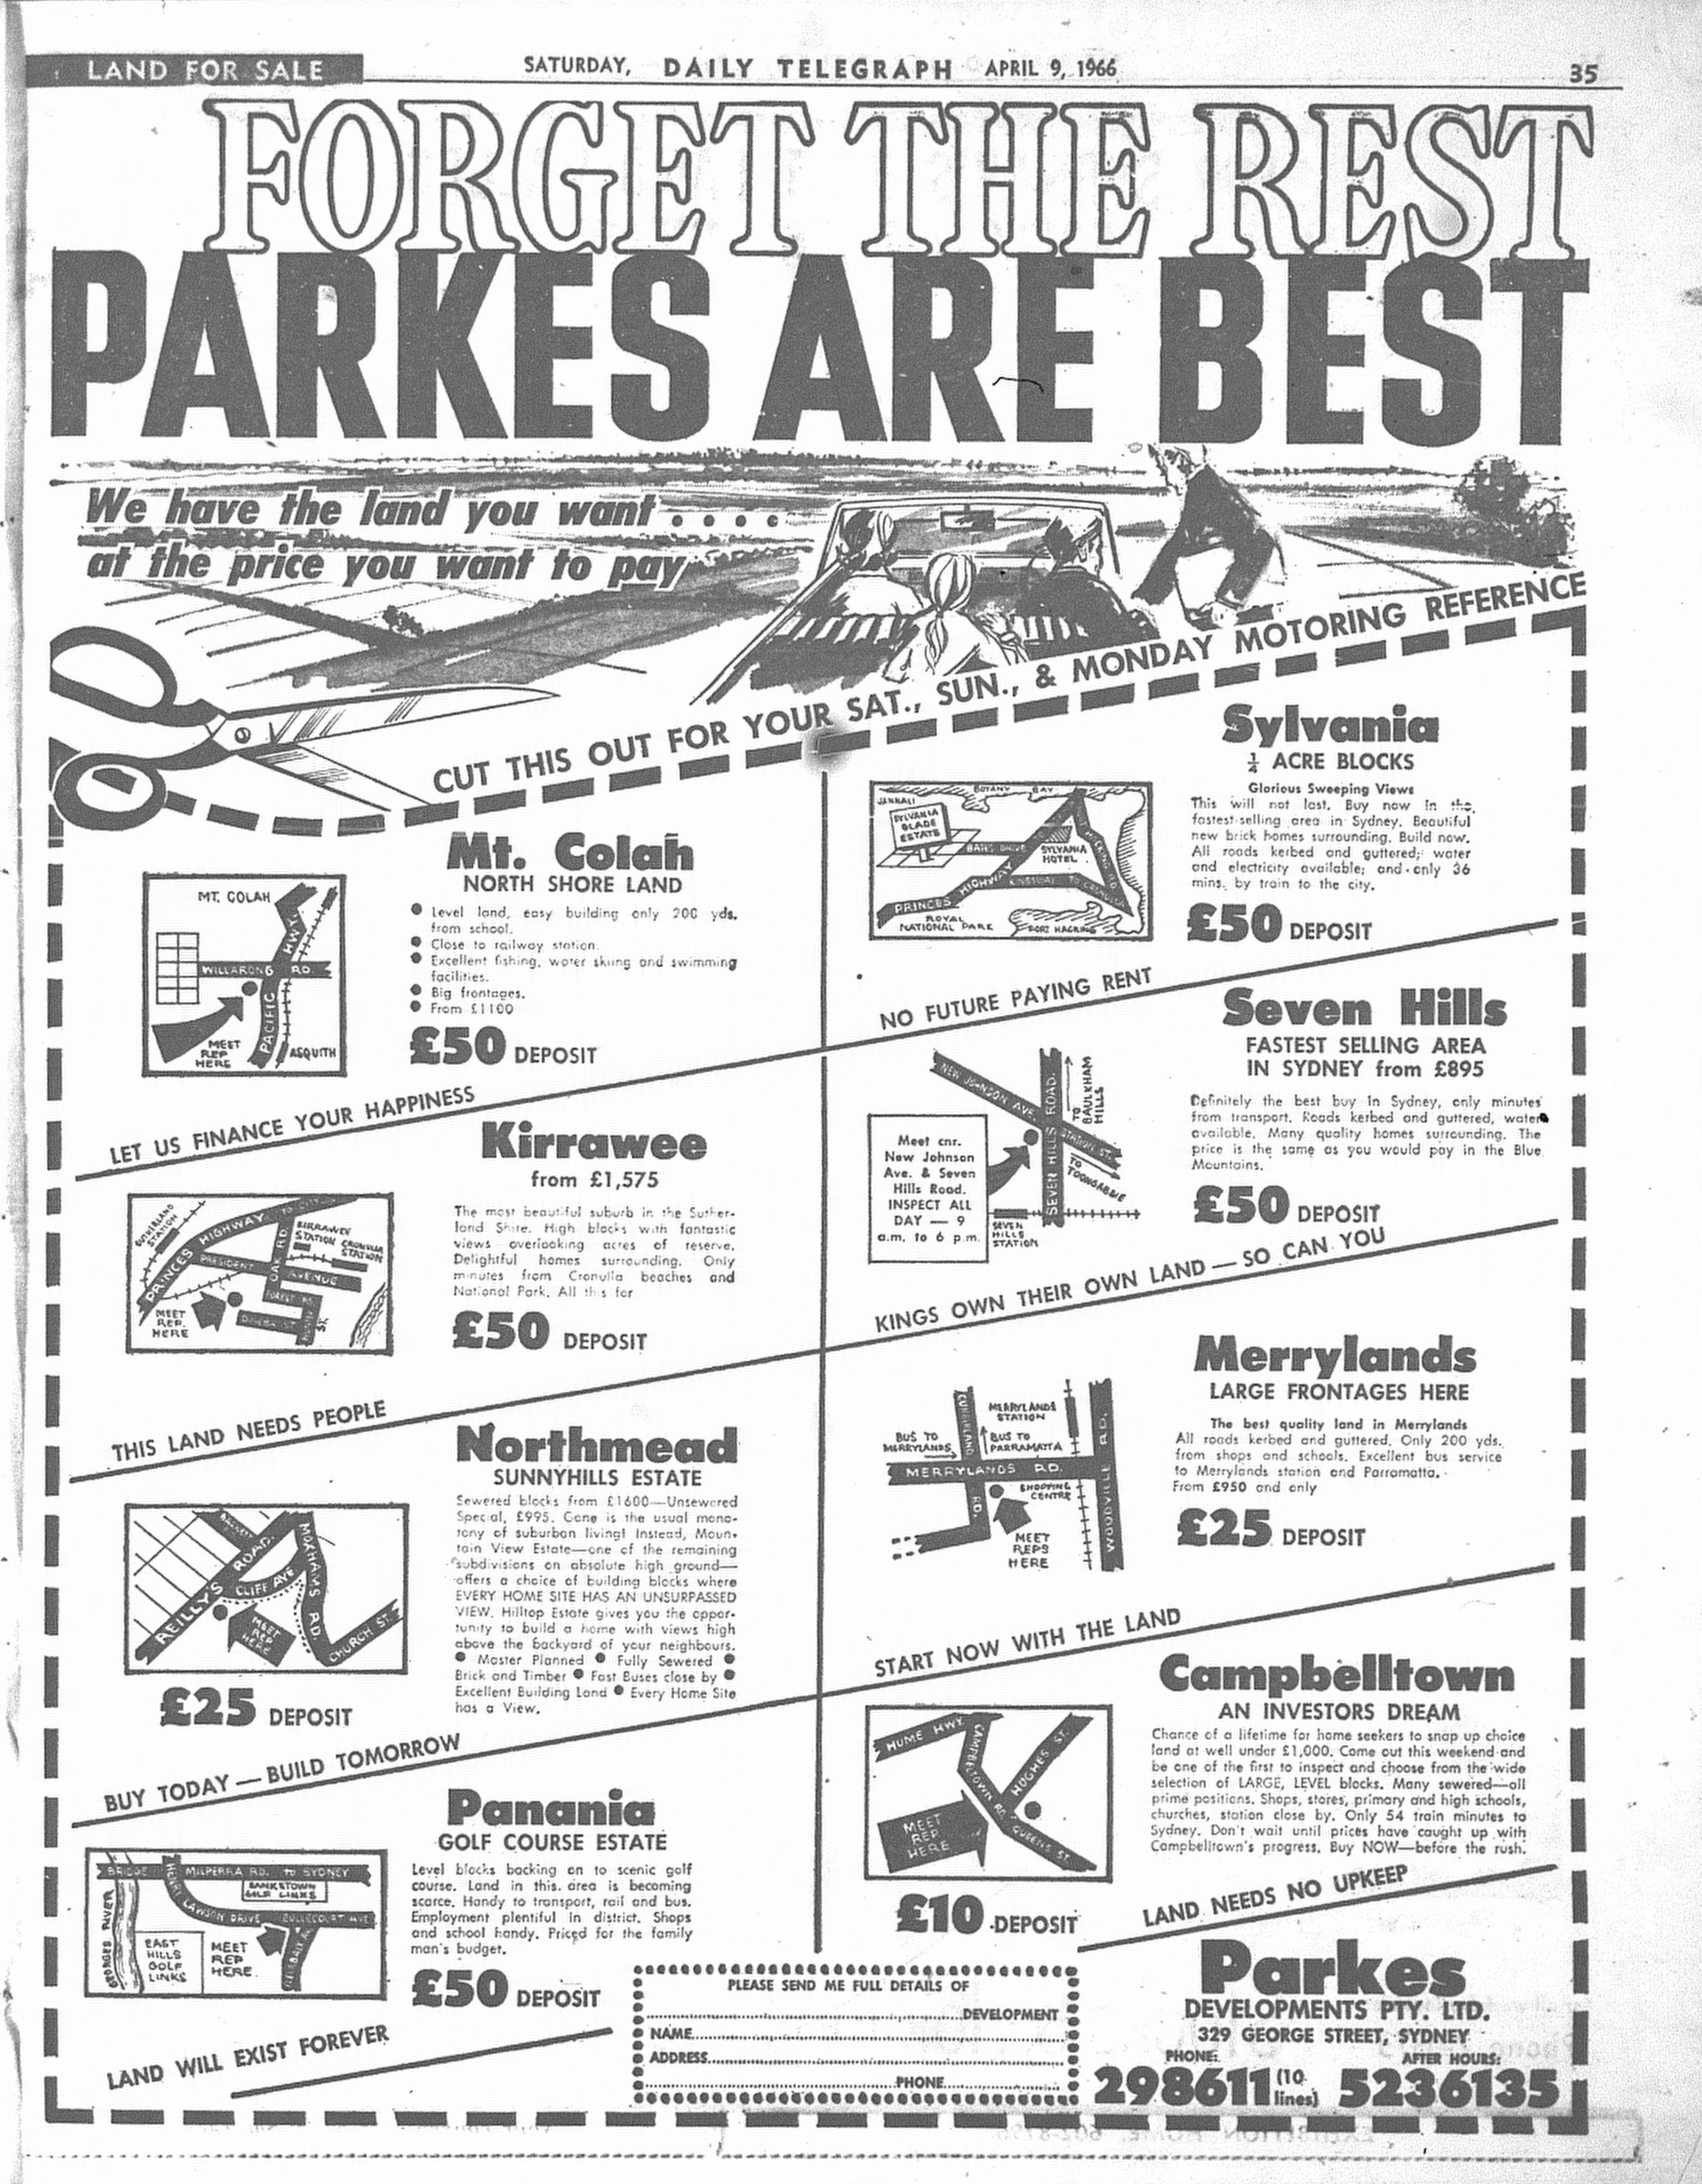 Parkes Ad April 9 1966 daily telegraph 35